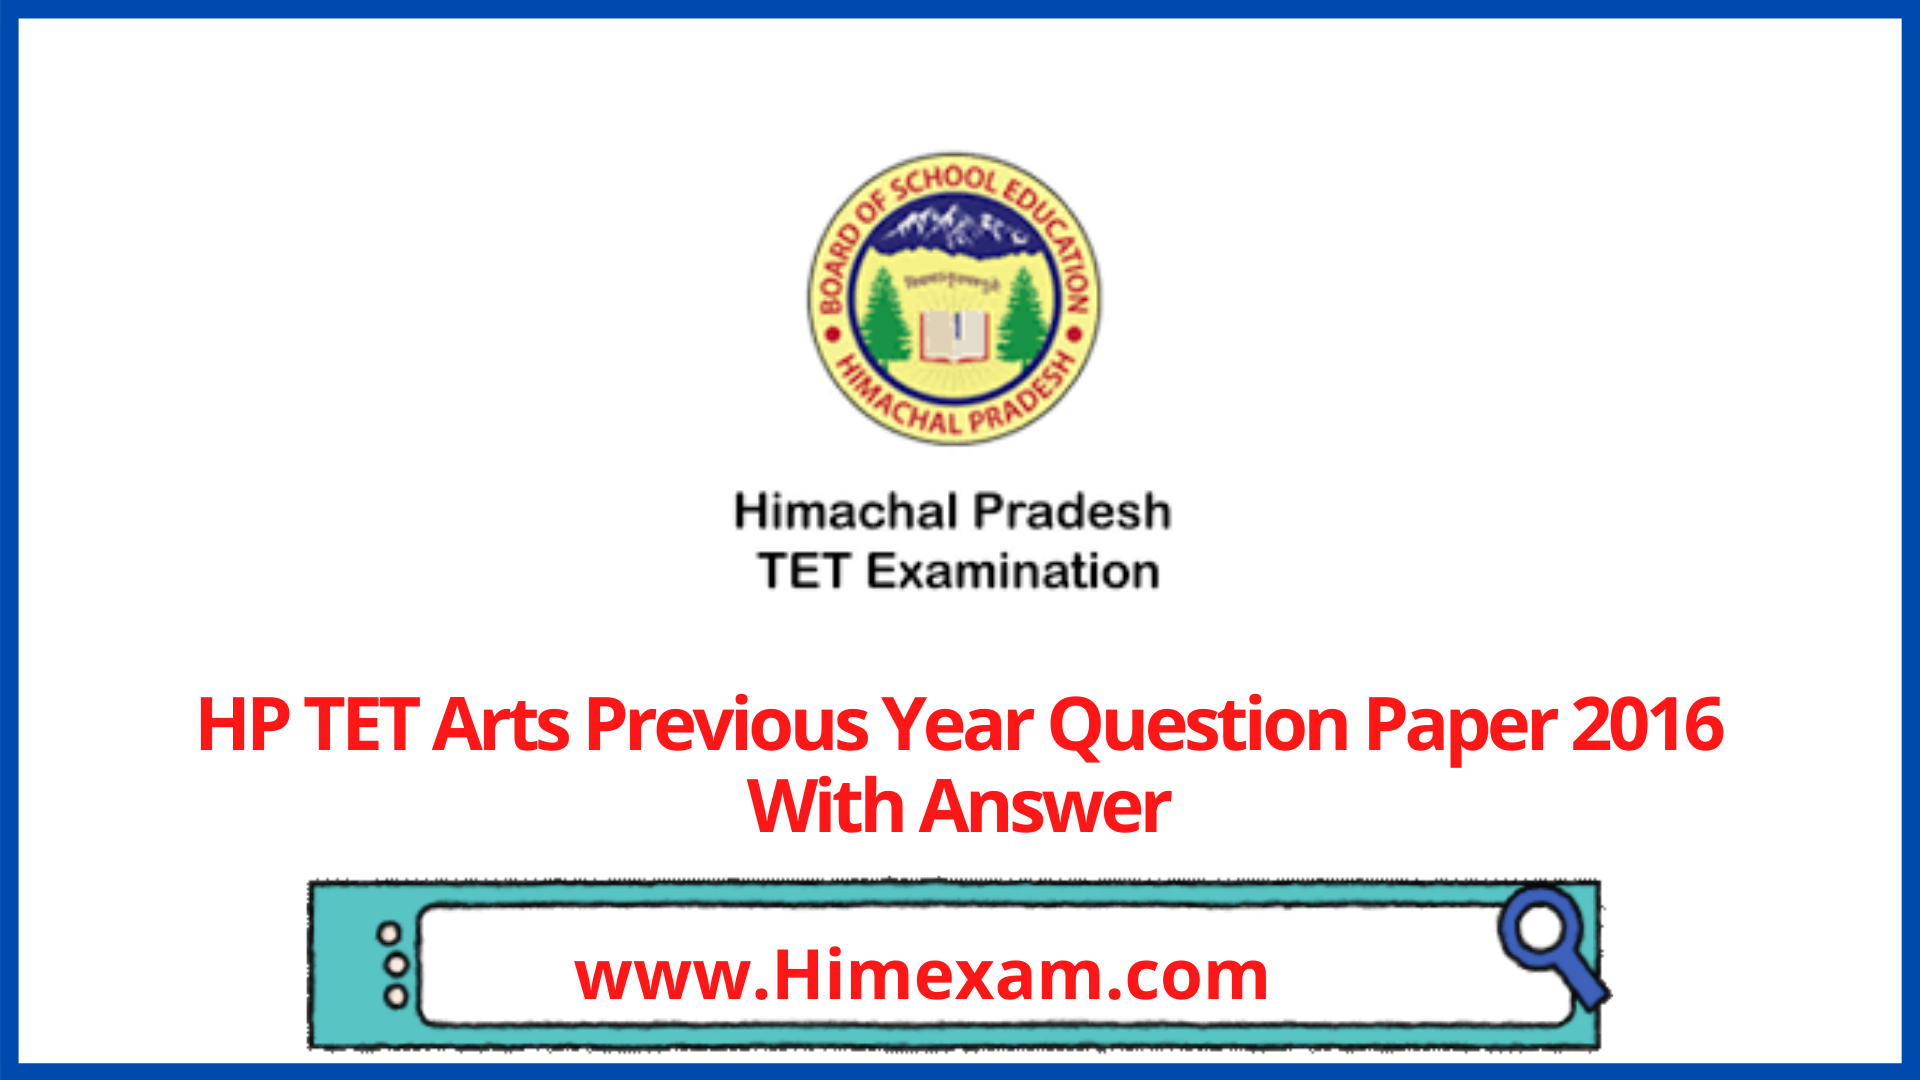 HP TET Arts Previous Year Question Paper 2016 With Answer